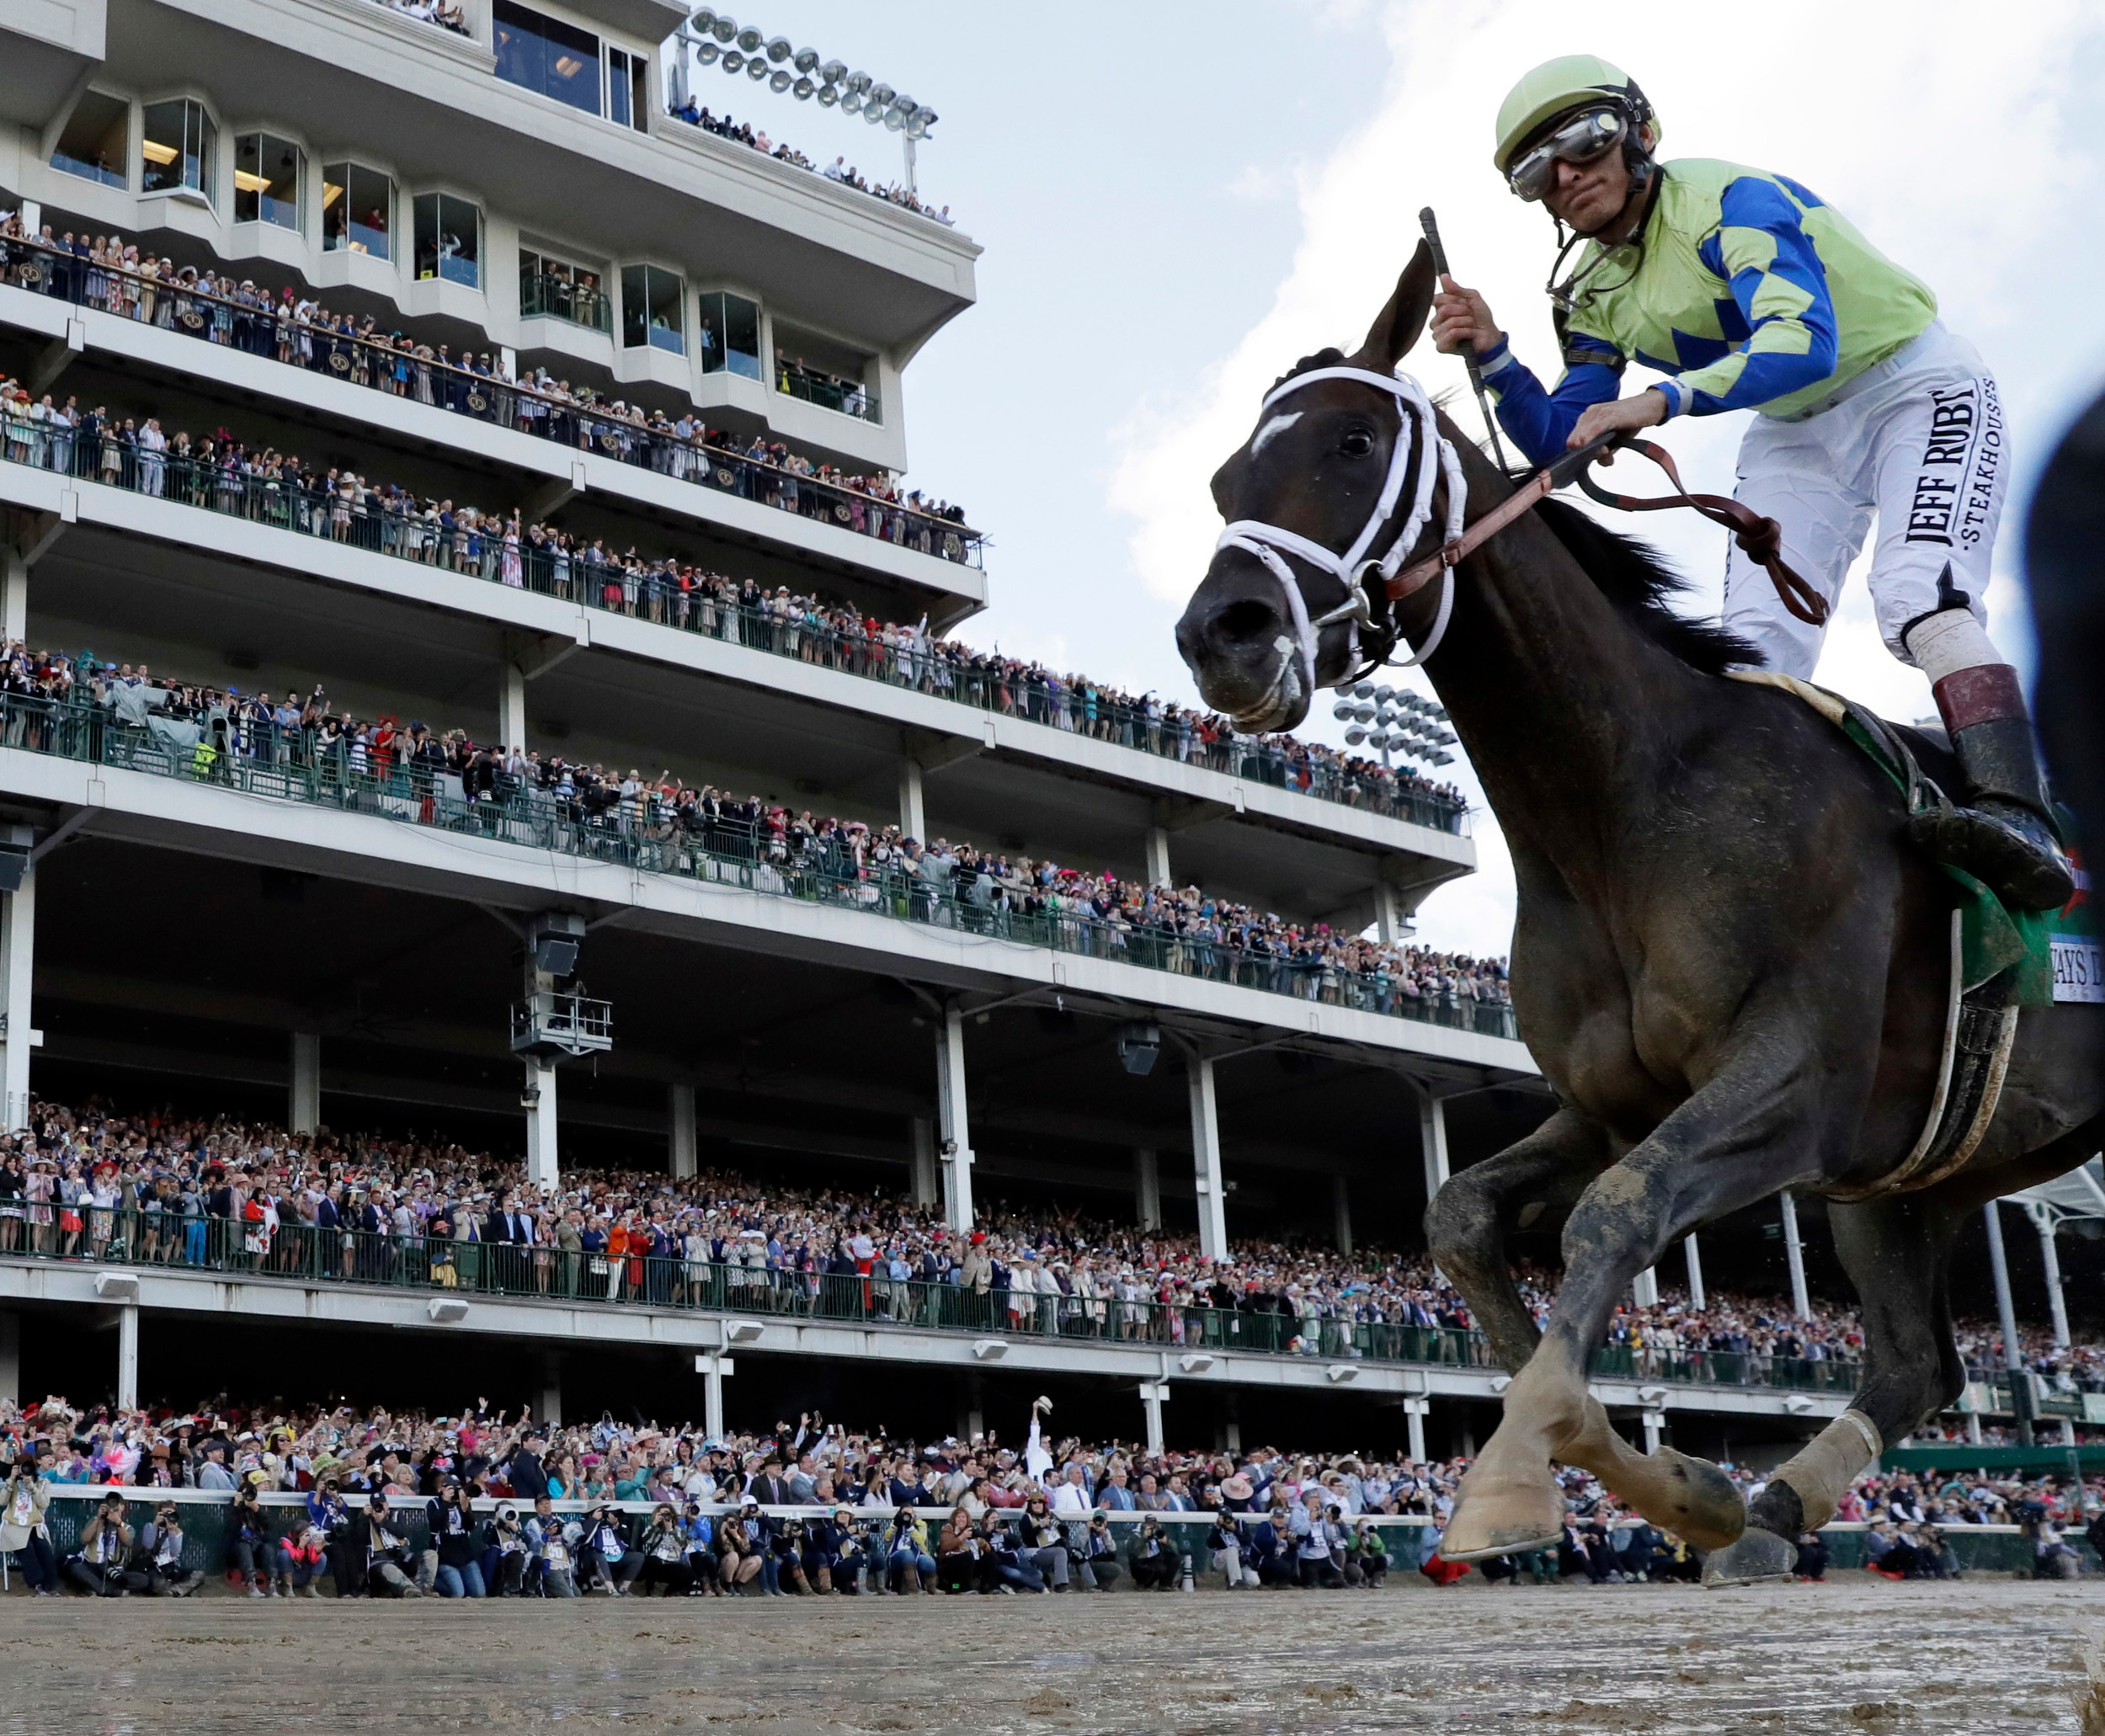 John Velazquez rides Always Dreaming to victory in the 143rd running of the Kentucky Derby horse race at Churchill Downs Saturday, May 6, 2017, in Louisville, Ky. (AP Photo/David J. Phillip)